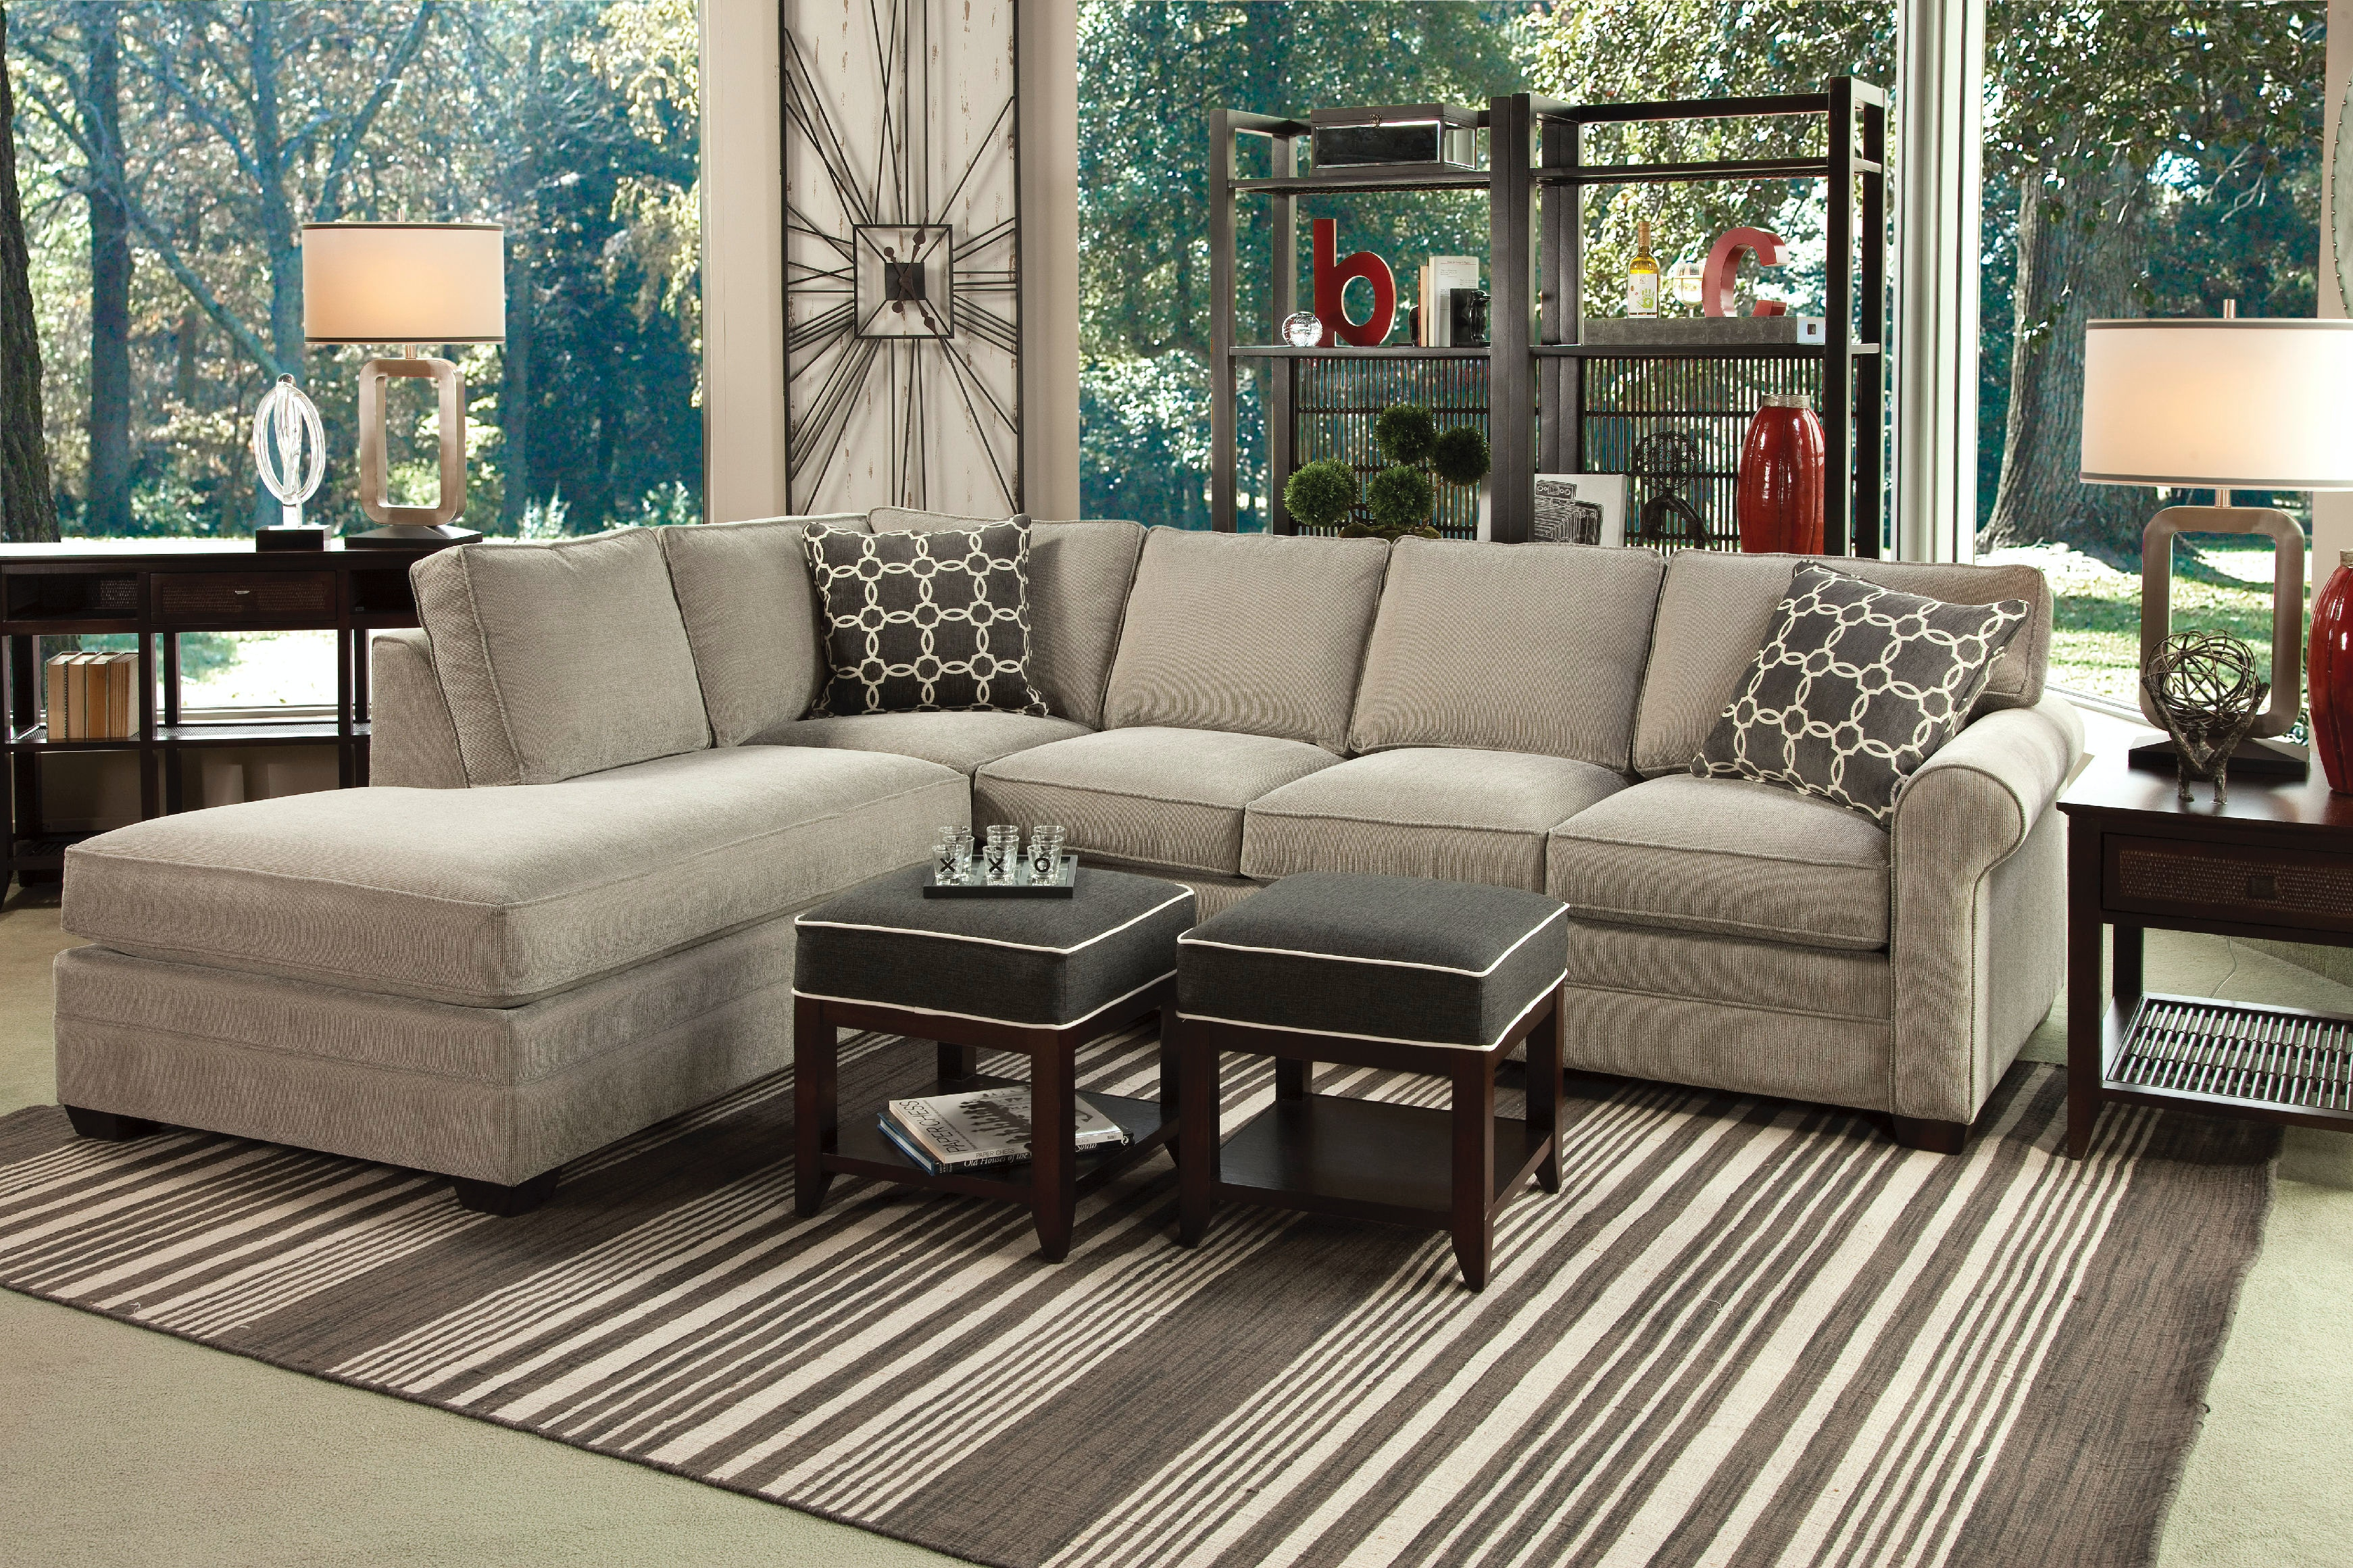 Charmant Braxton Culler Living Room Bedford Sectional 728 Sectional   Weinbergeru0027s  Furniture And Mattress Showcase   Augusta And Lake Oconee, GA